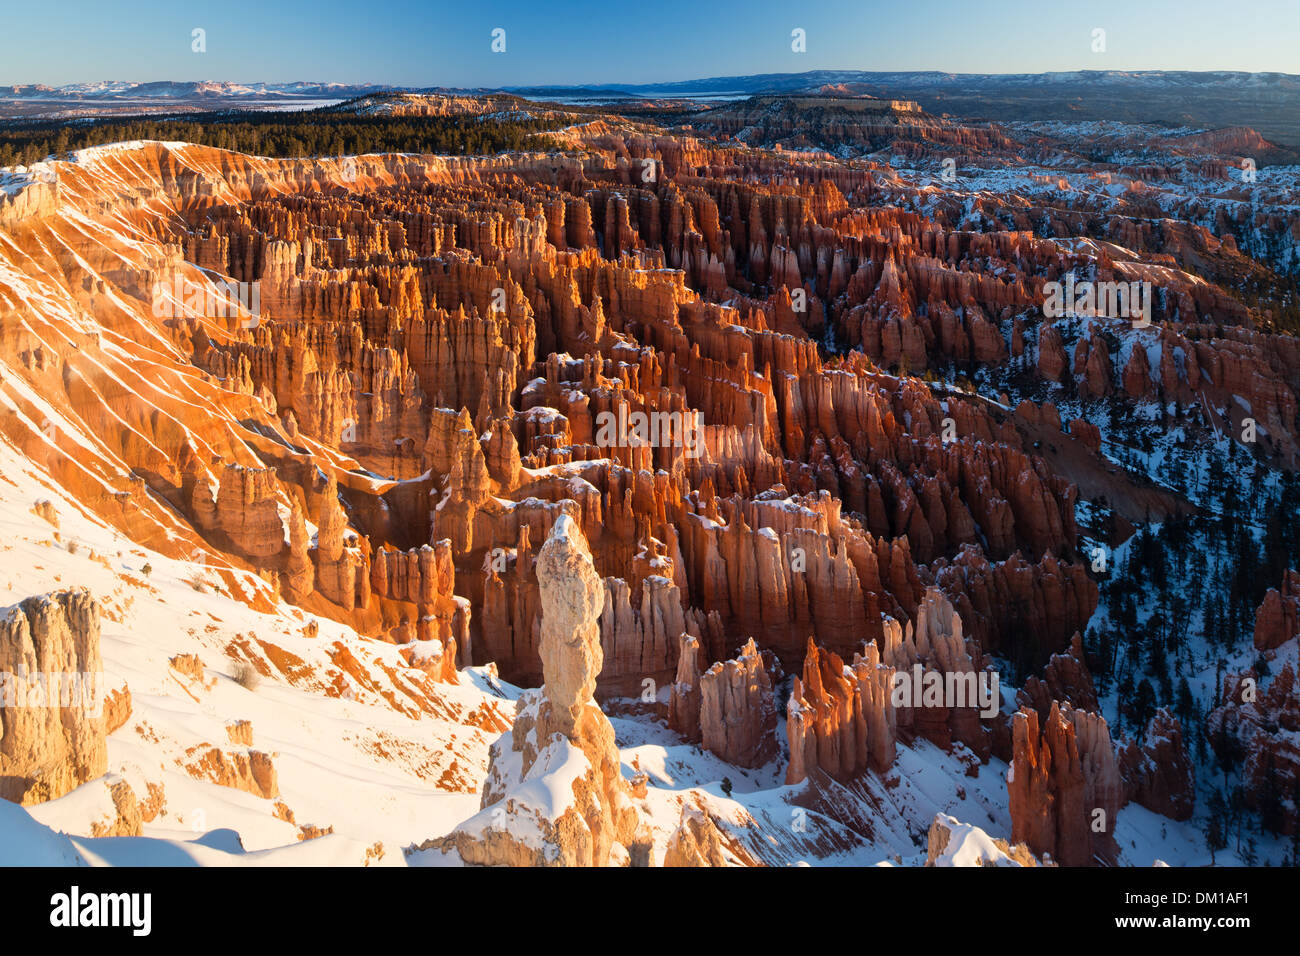 the hoodoos in the Amphitheatre of Bryce Canyon at dawn, Utah, USA - Stock Image